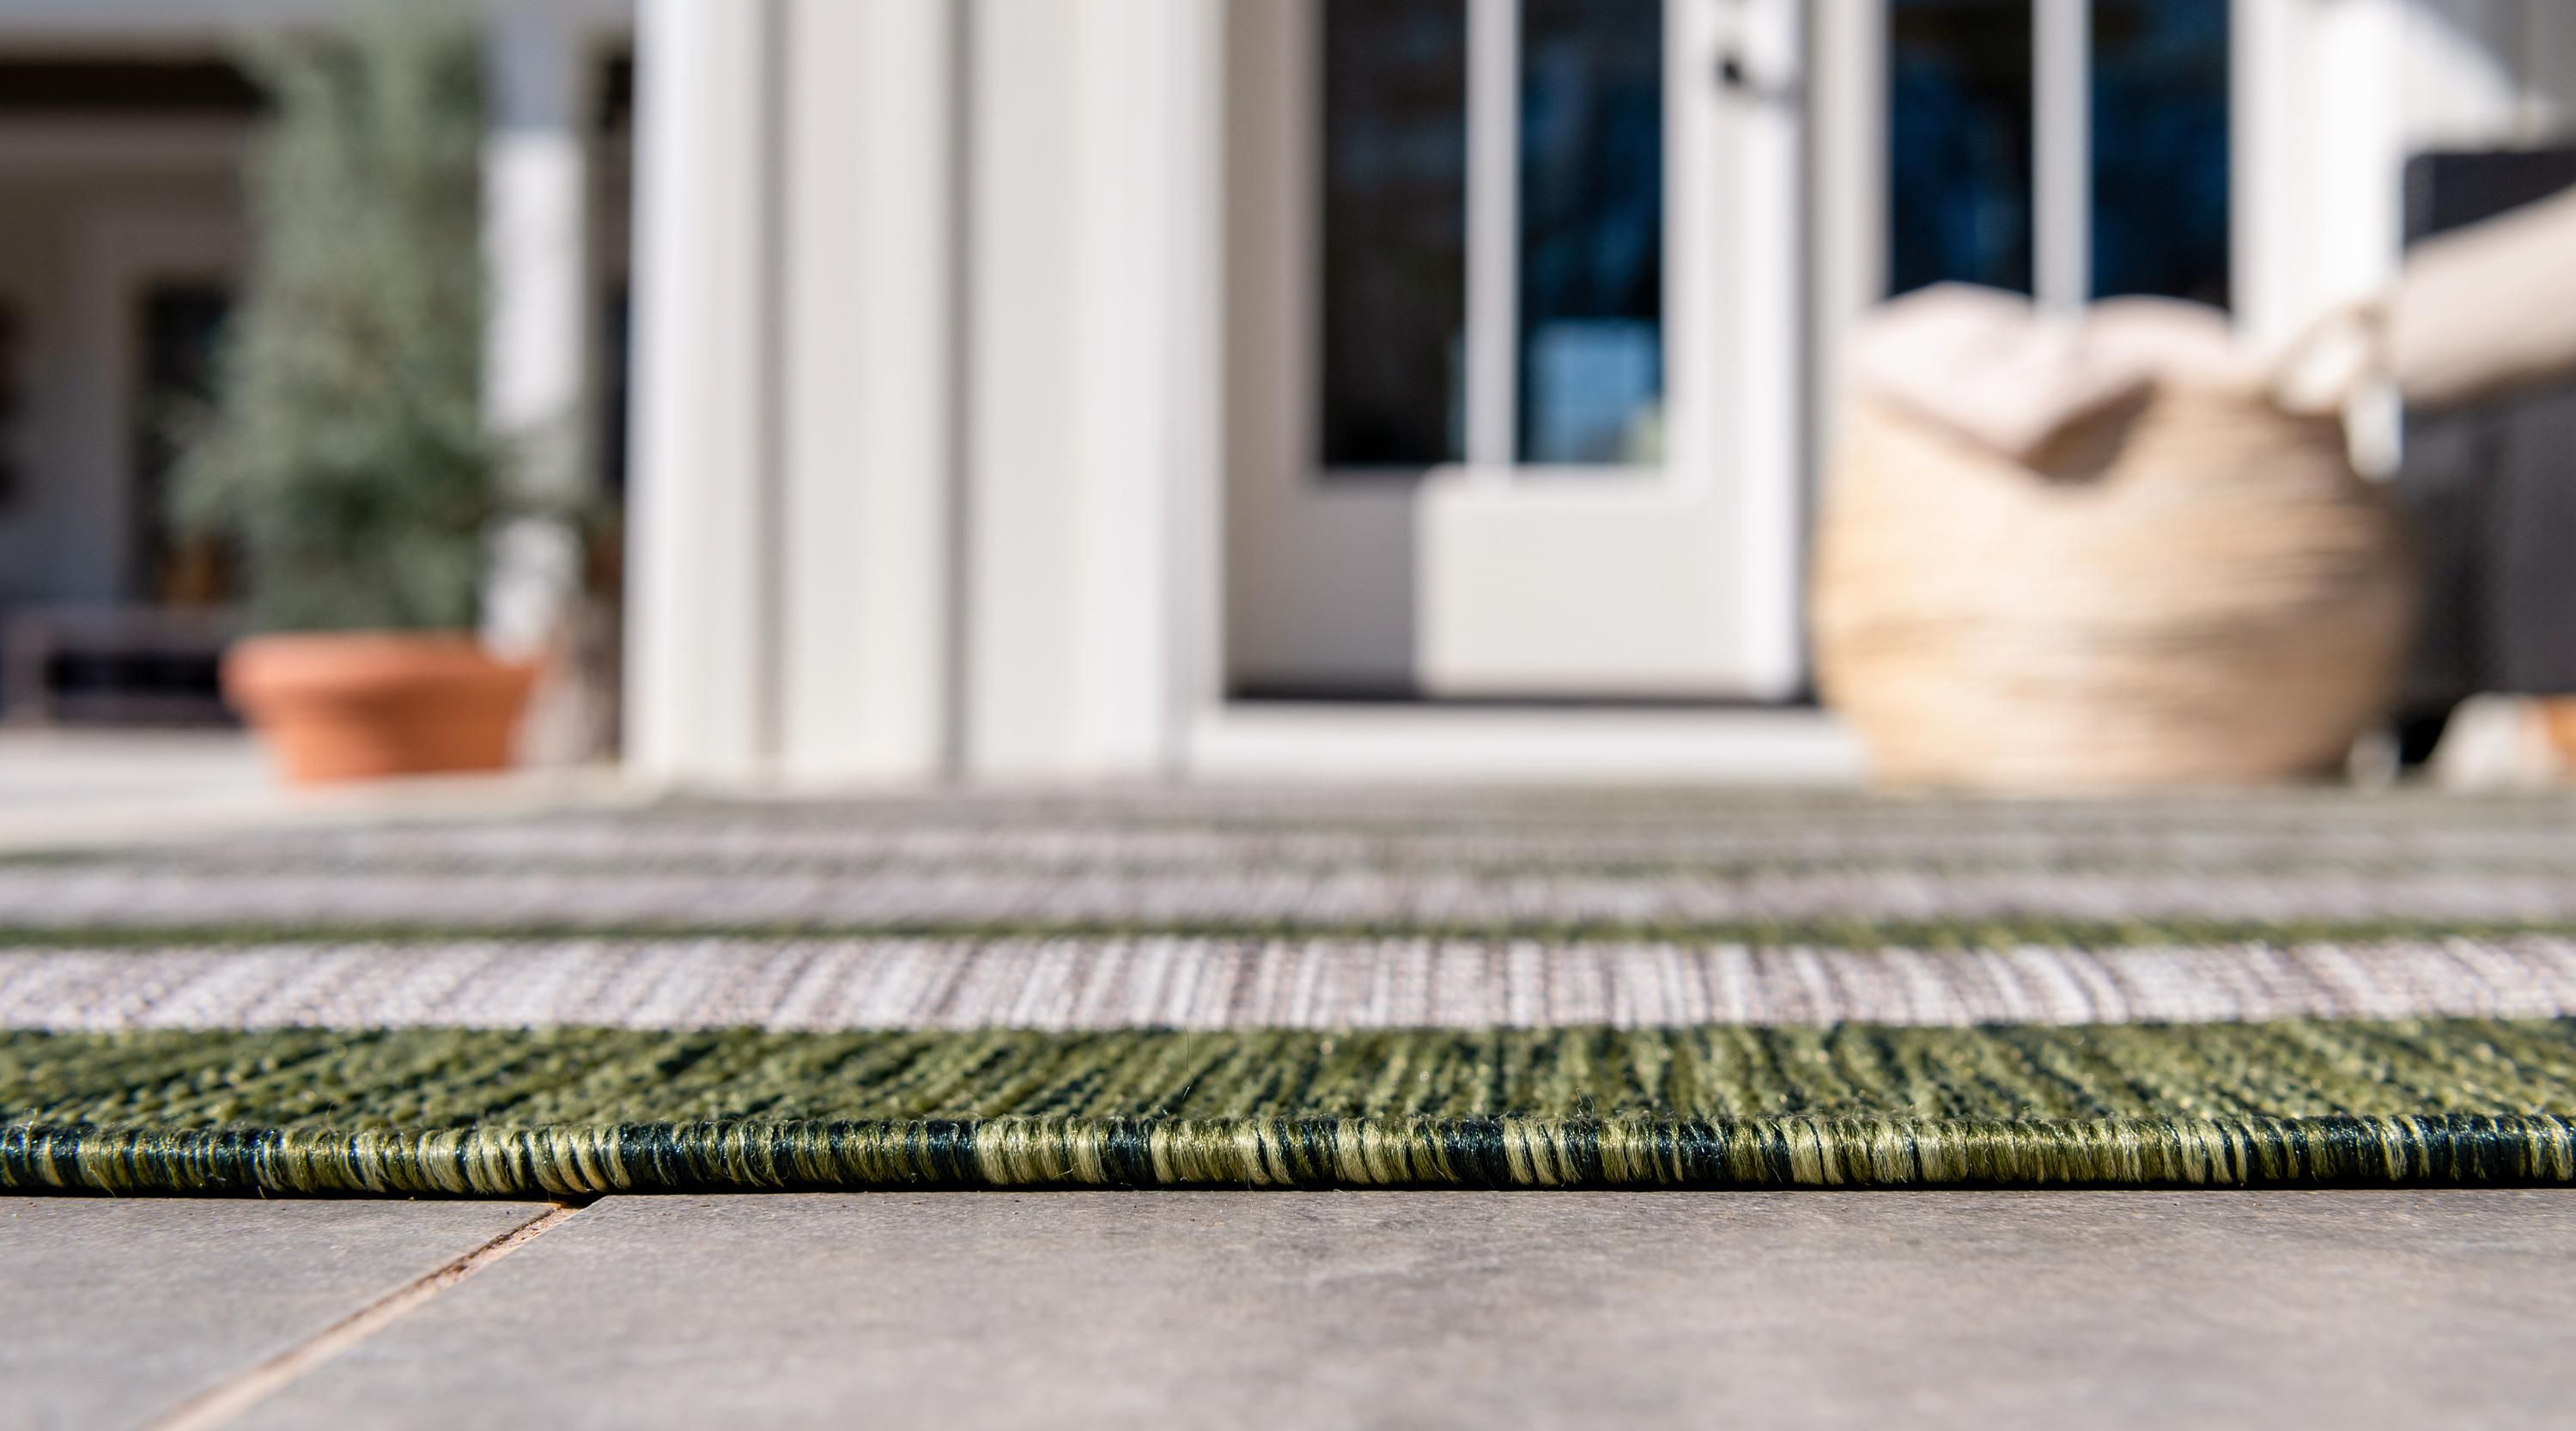 Green 9 X 12 Outdoor Striped Rug Affiliate Green Outdoor Rug Striped Sponsored Outdoor Striped Rug Shed Colours Striped Rug